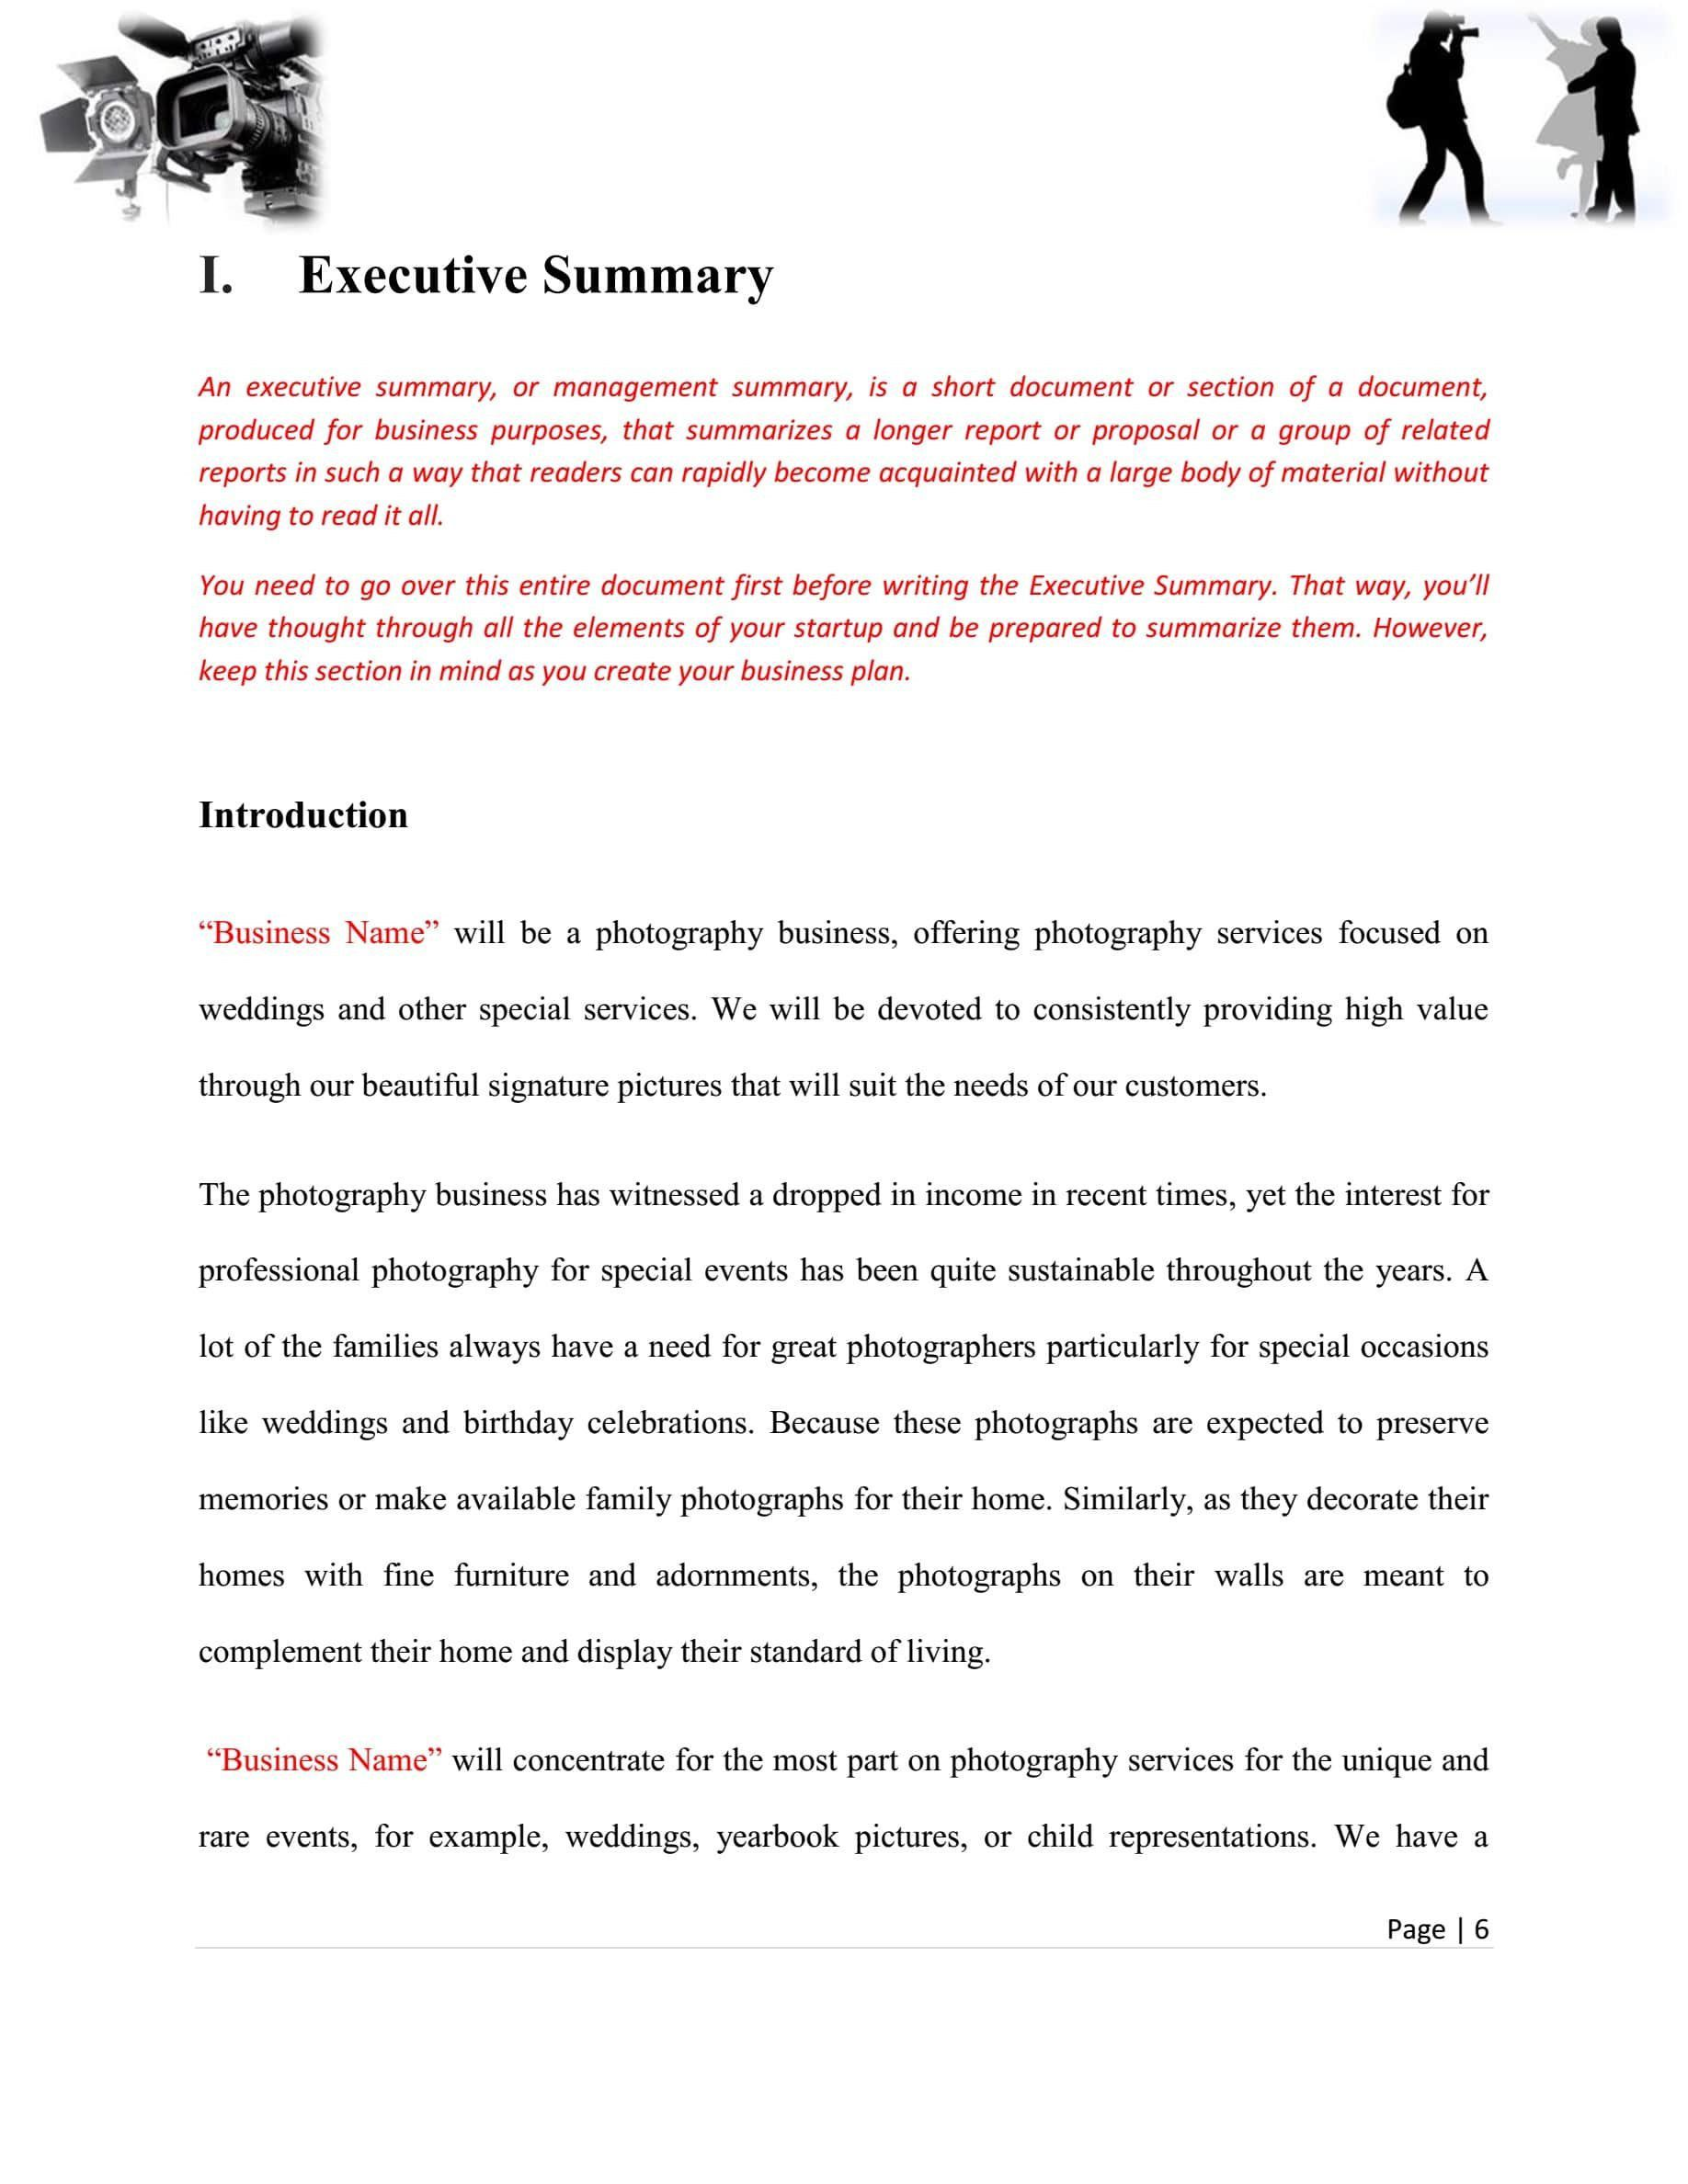 008 Fascinating Photography Busines Plan Template Free Highest Clarity  Sample Doc DownloadFull